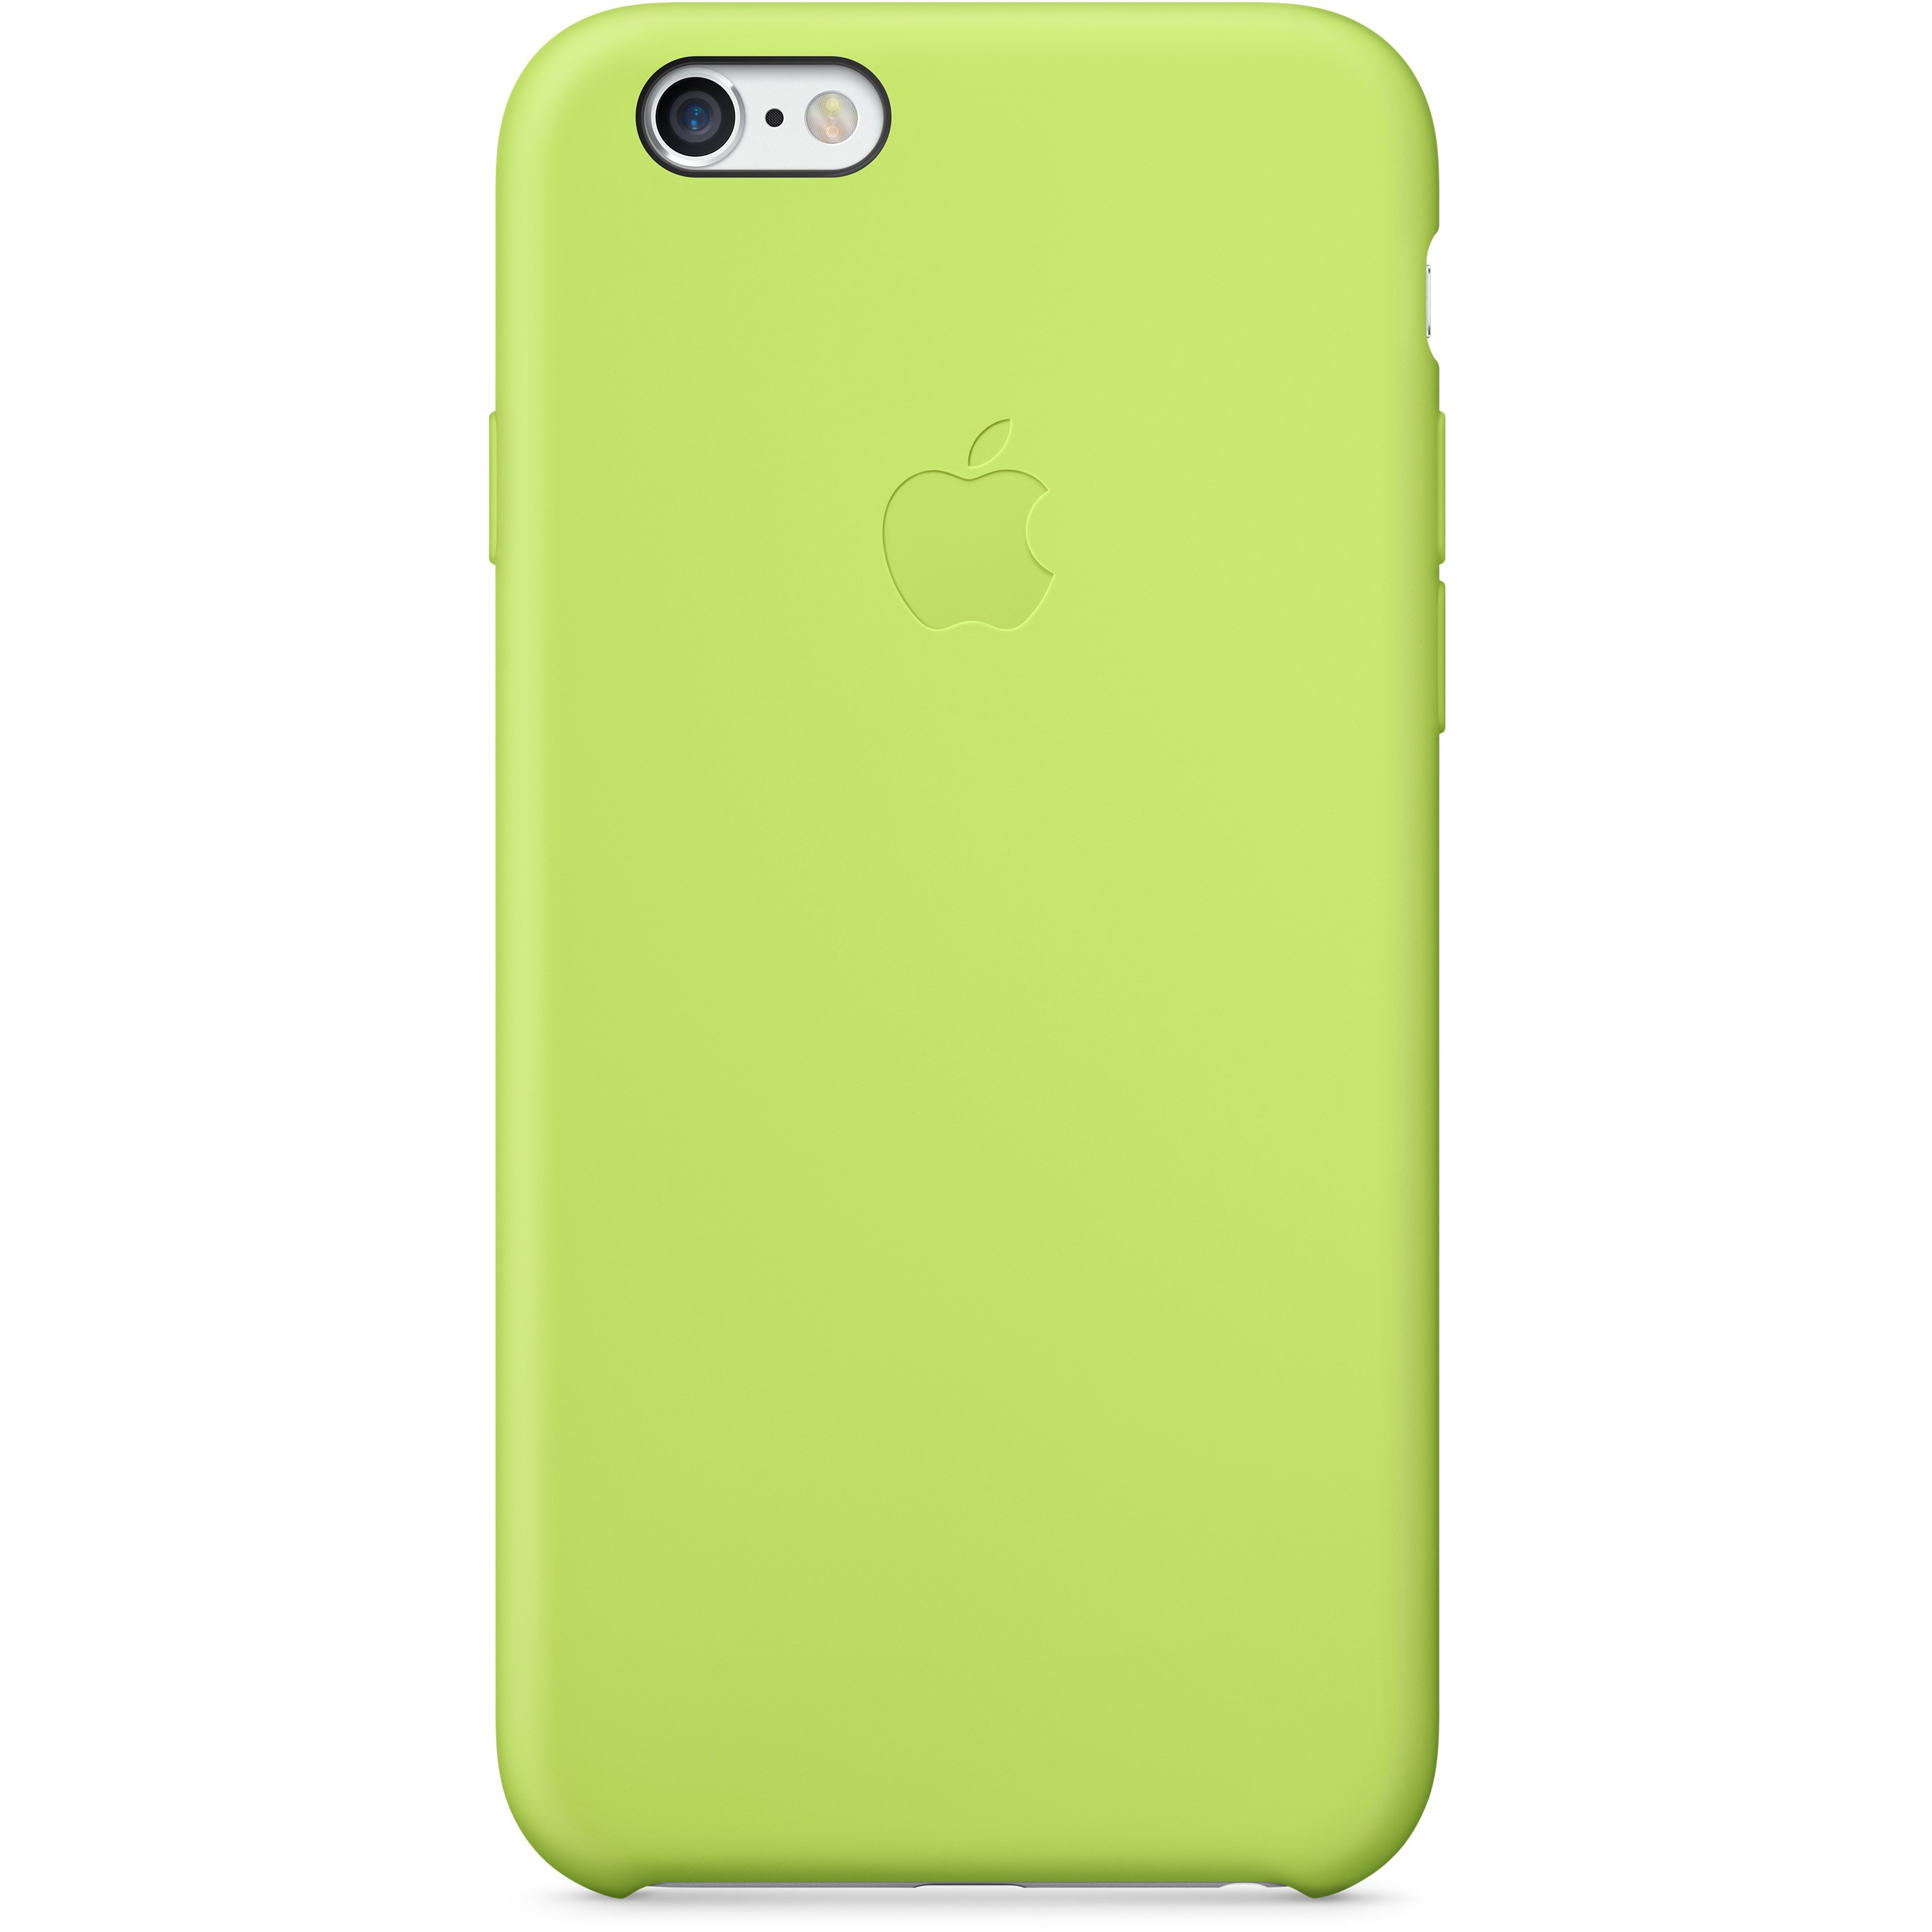 premium selection 5ac74 52989 Apple Silicone Case for iPhone 6s - Green